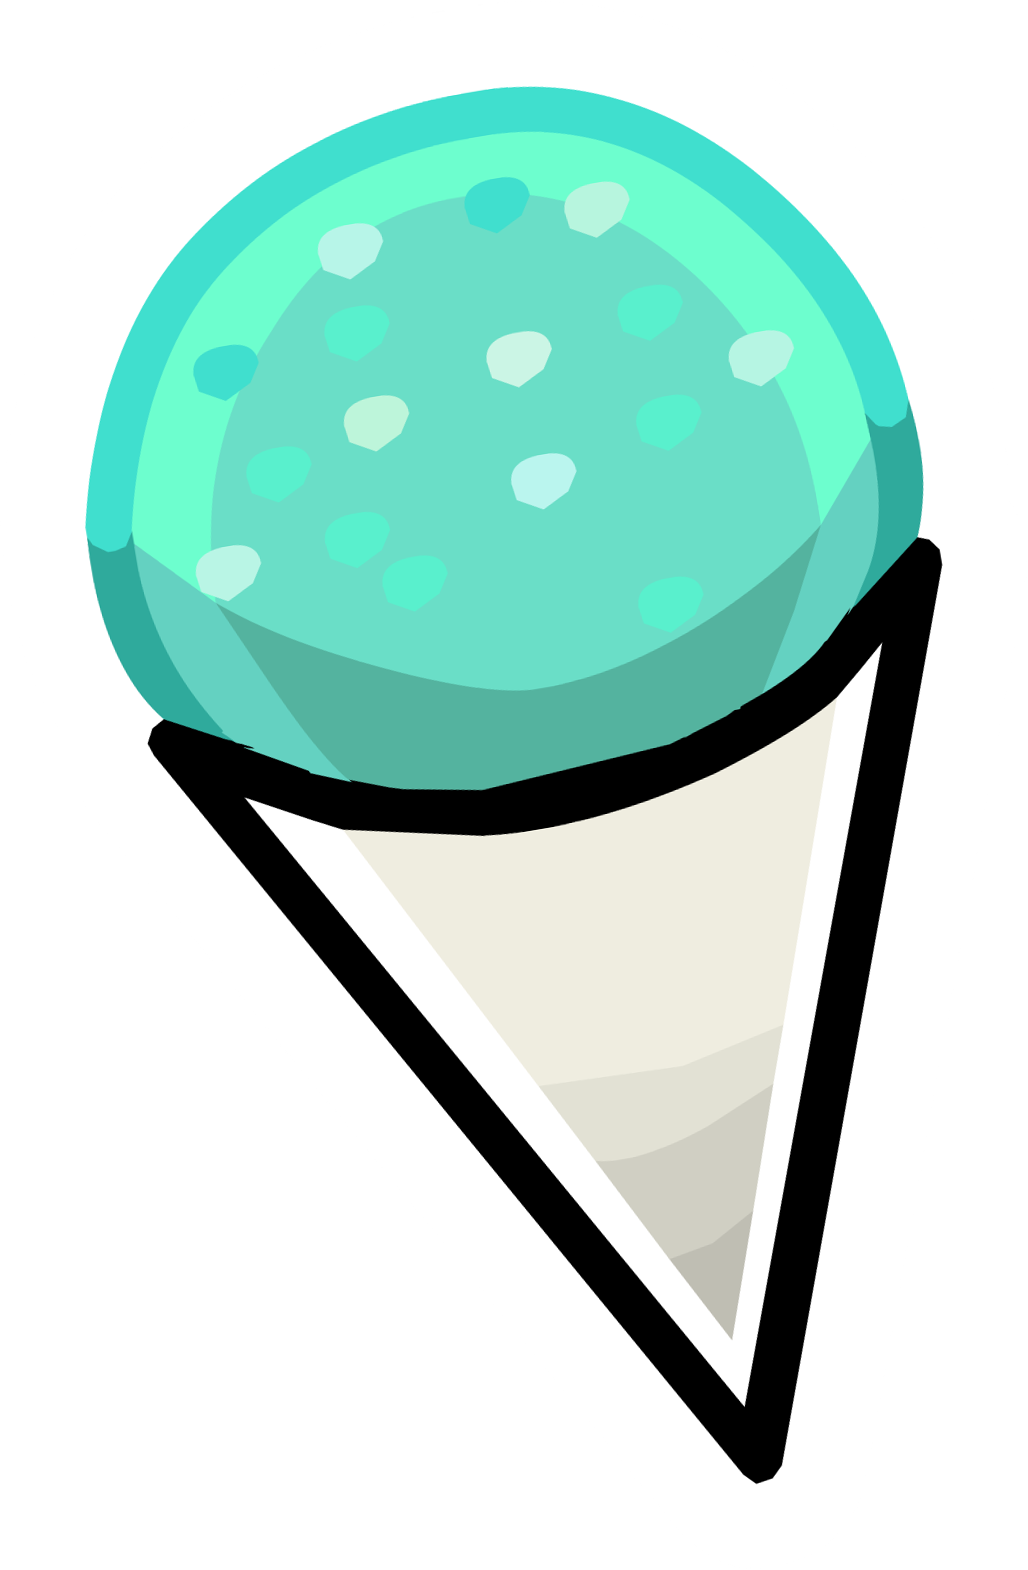 Snow cone png. Image pin club penguin